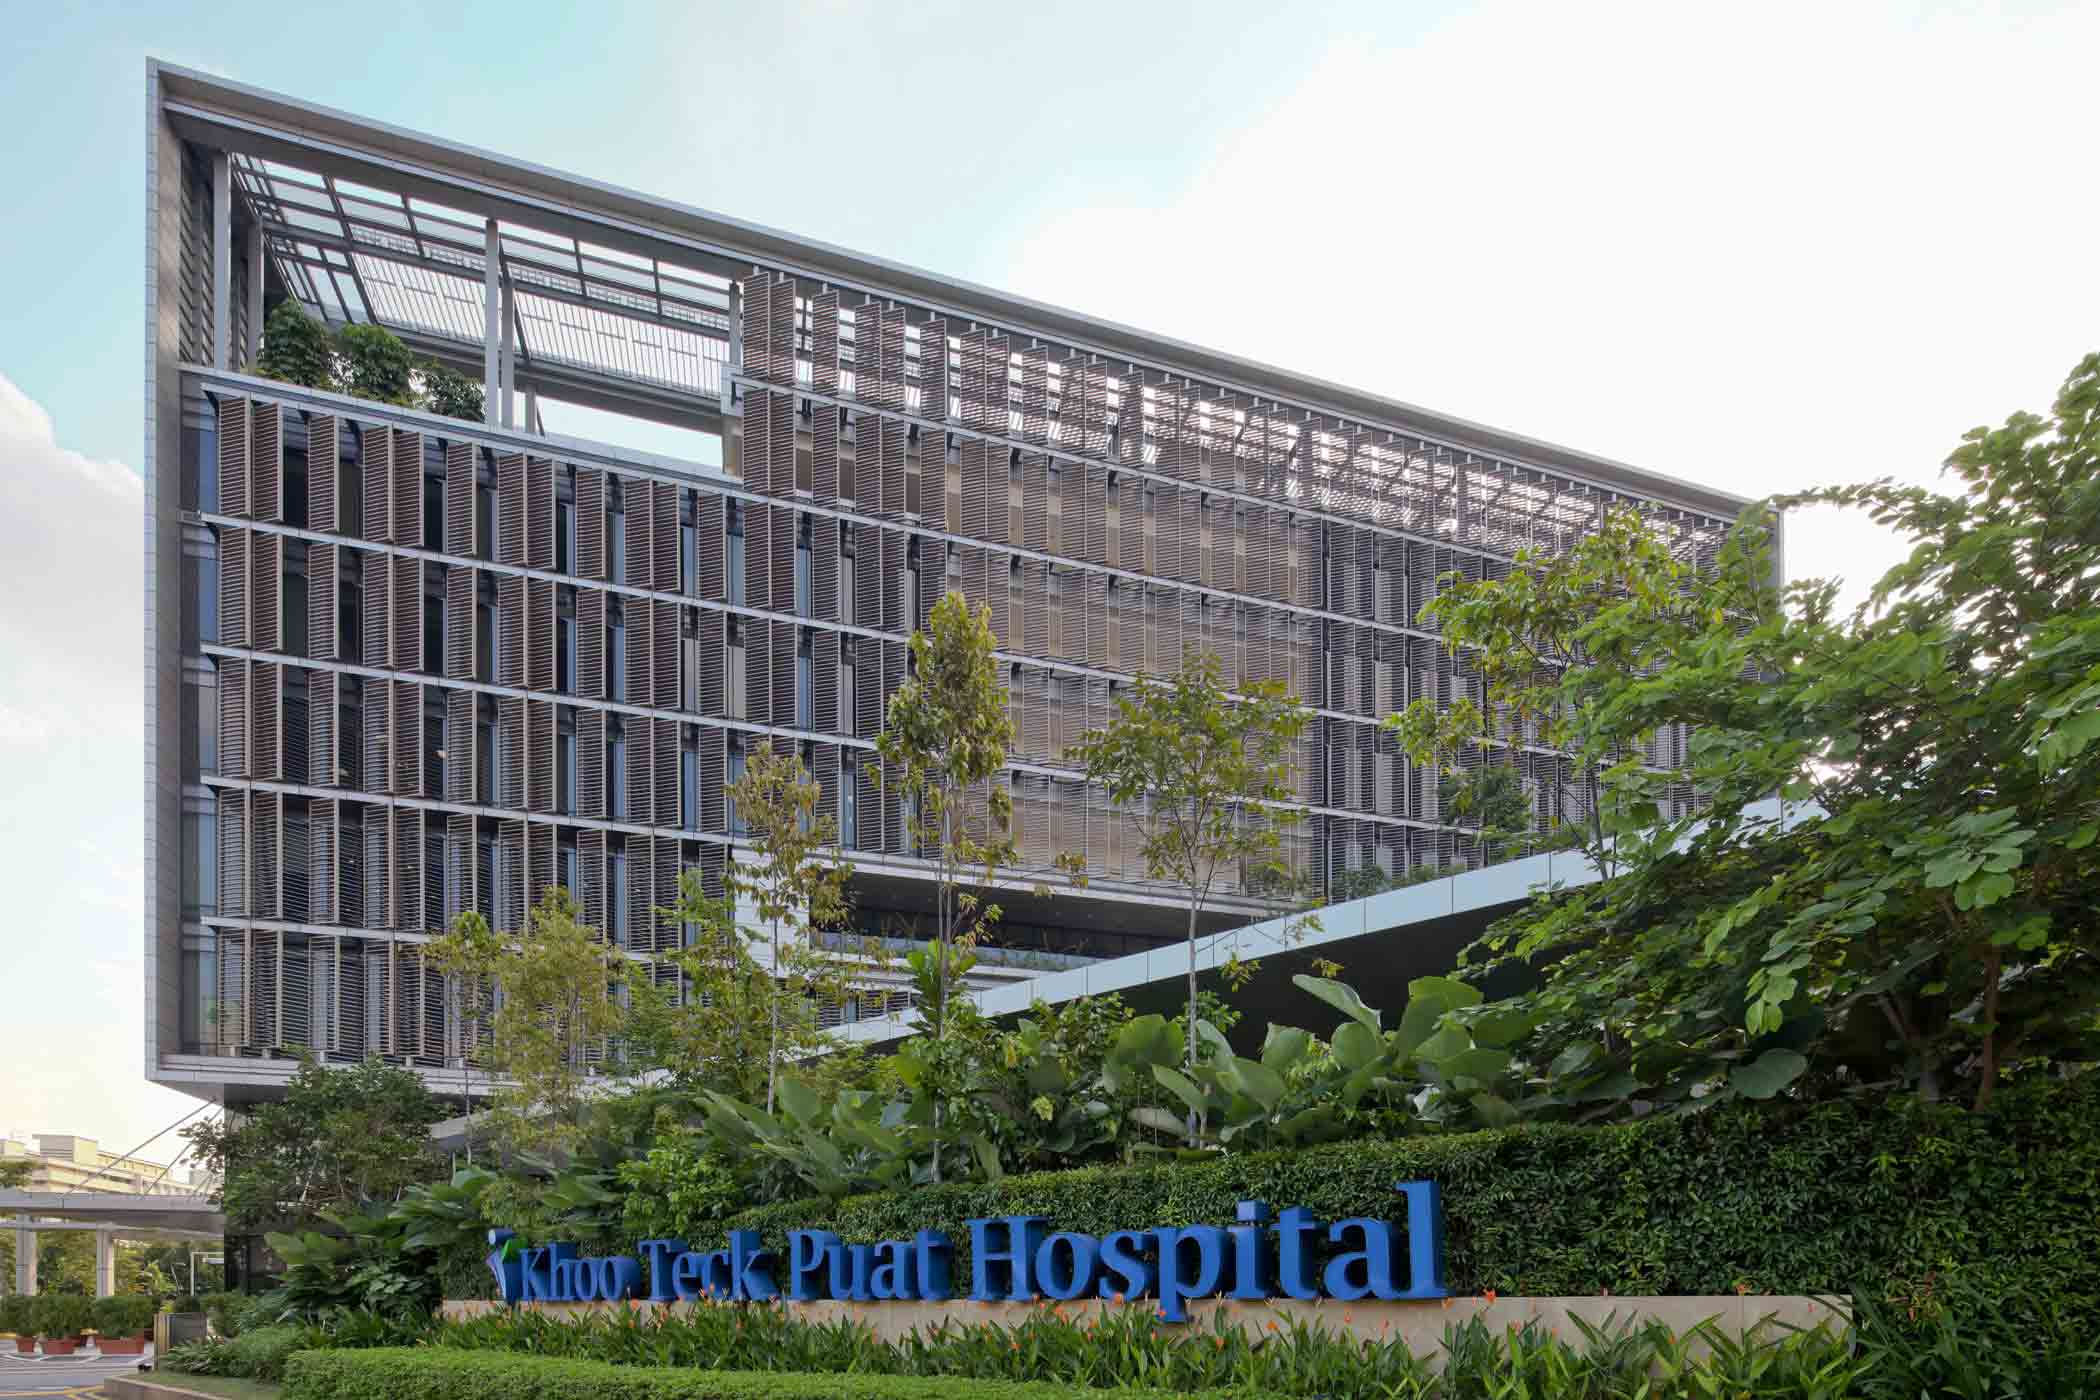 The Architect's Perspective: Khoo Teck Puat Hospital